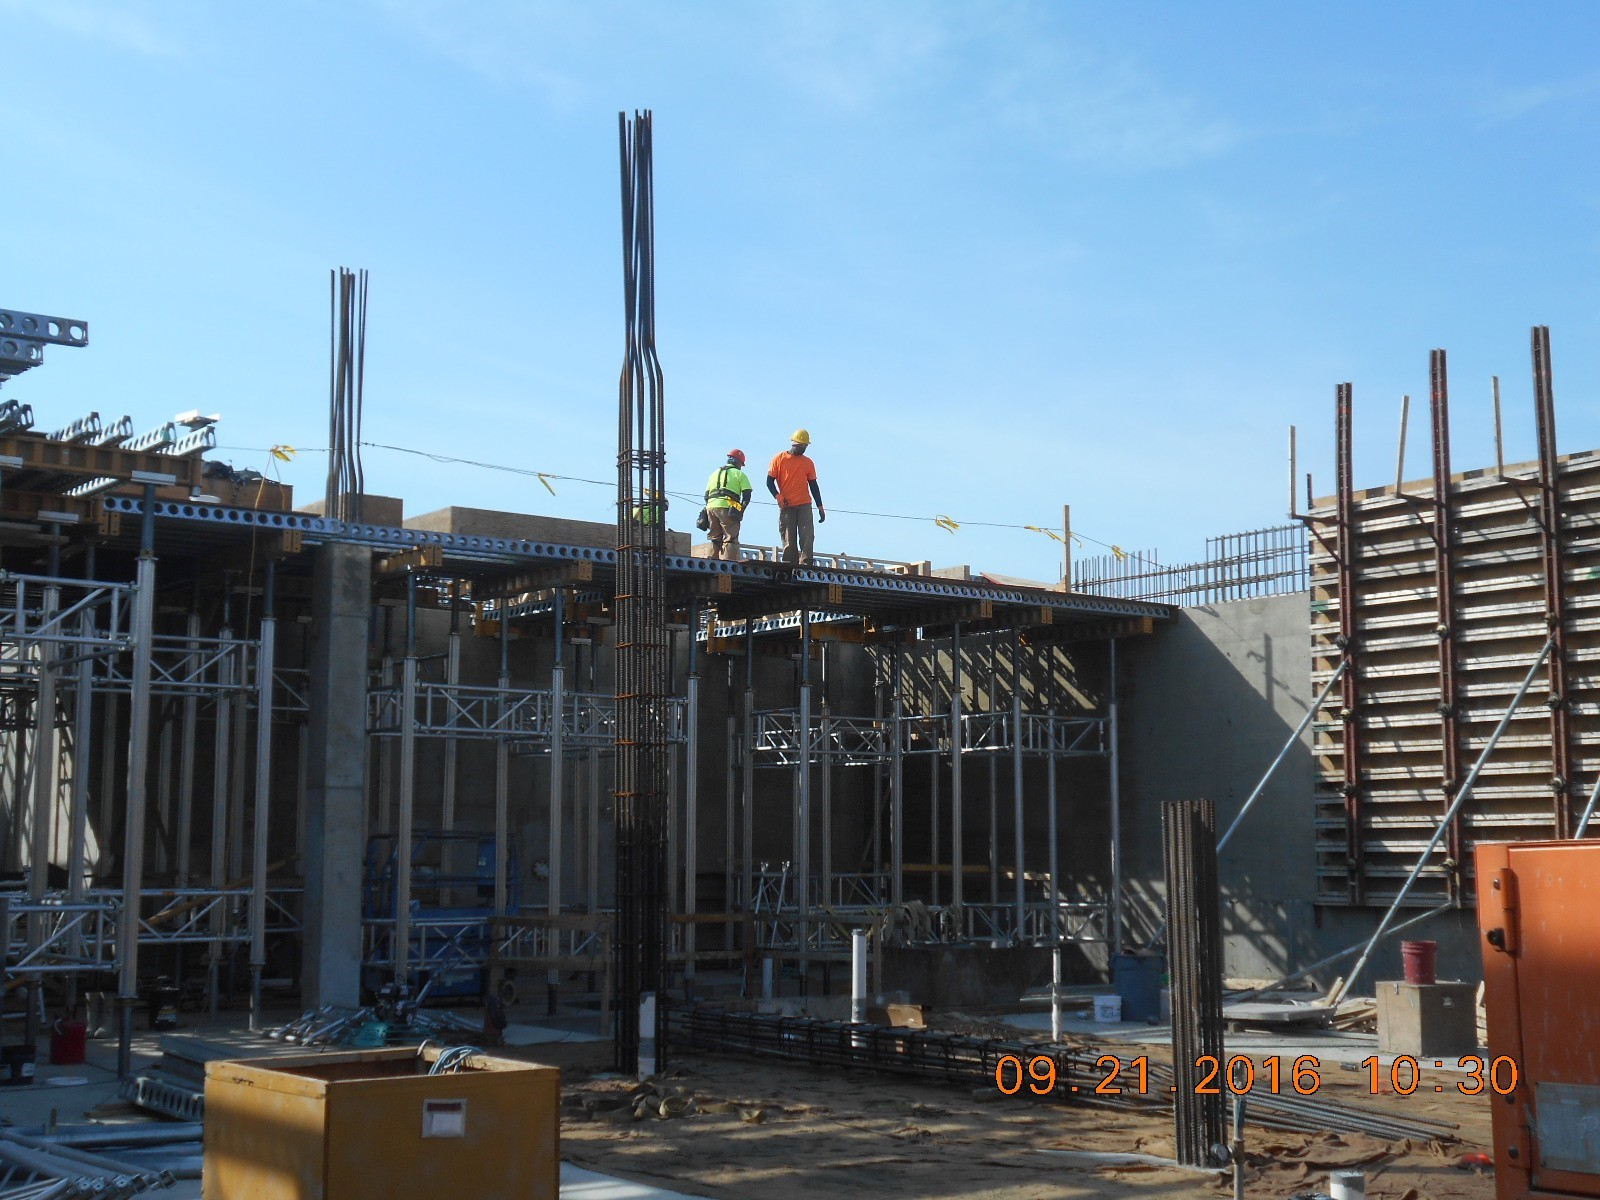 JTJ working on shoring and decking for the first floor slab (pour 2).